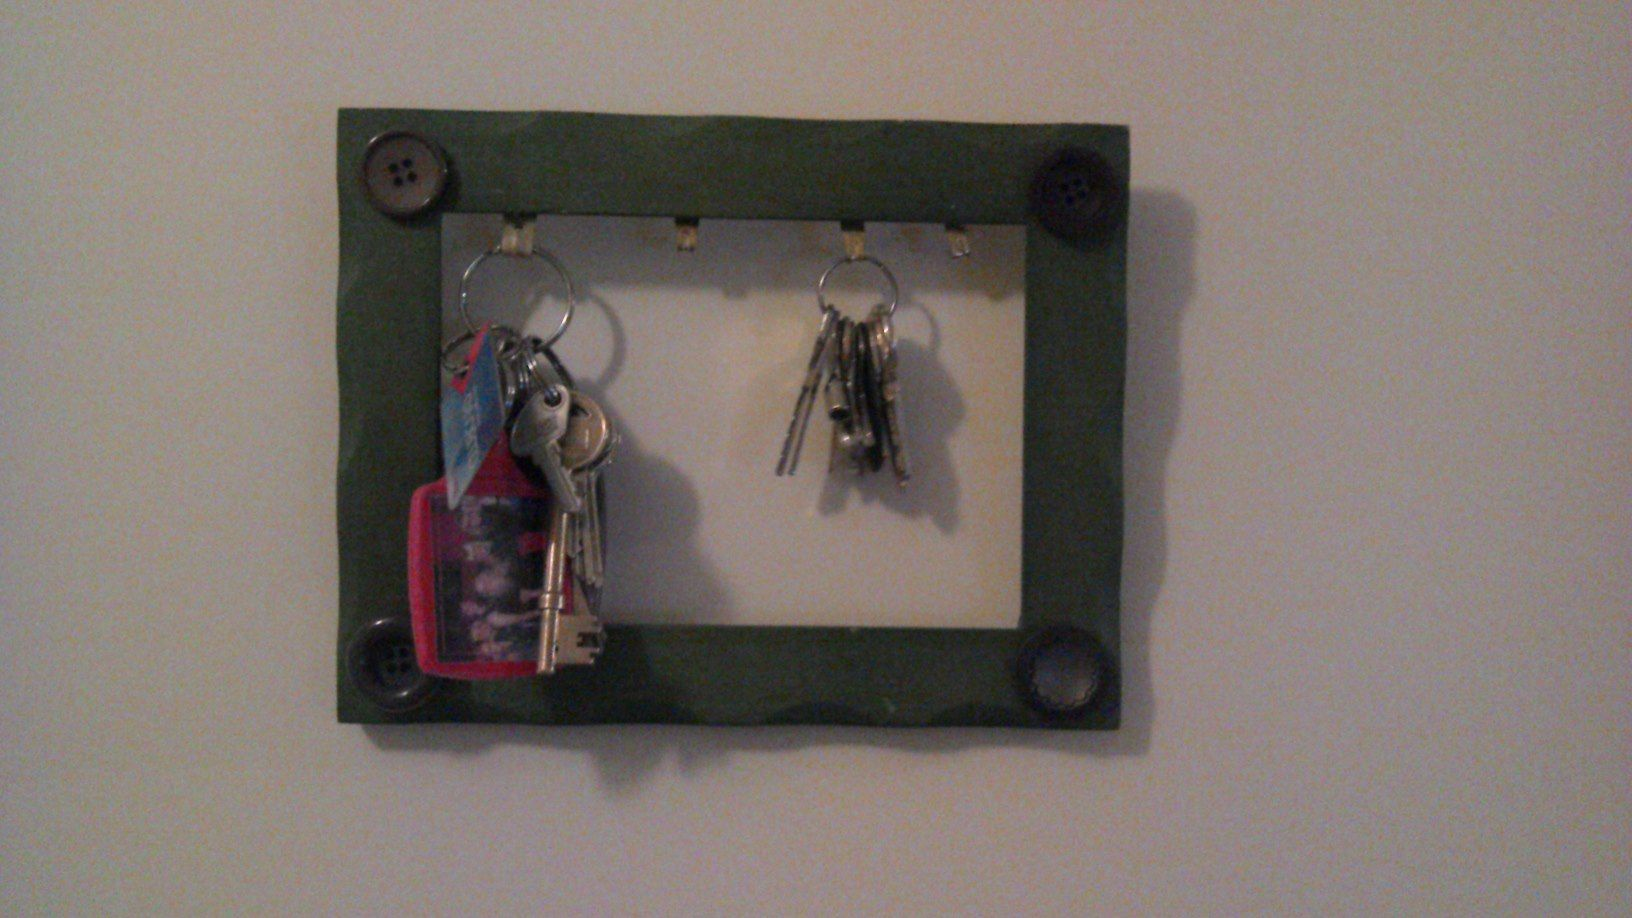 Homemade key holder old photo frame, buttons, pva glue